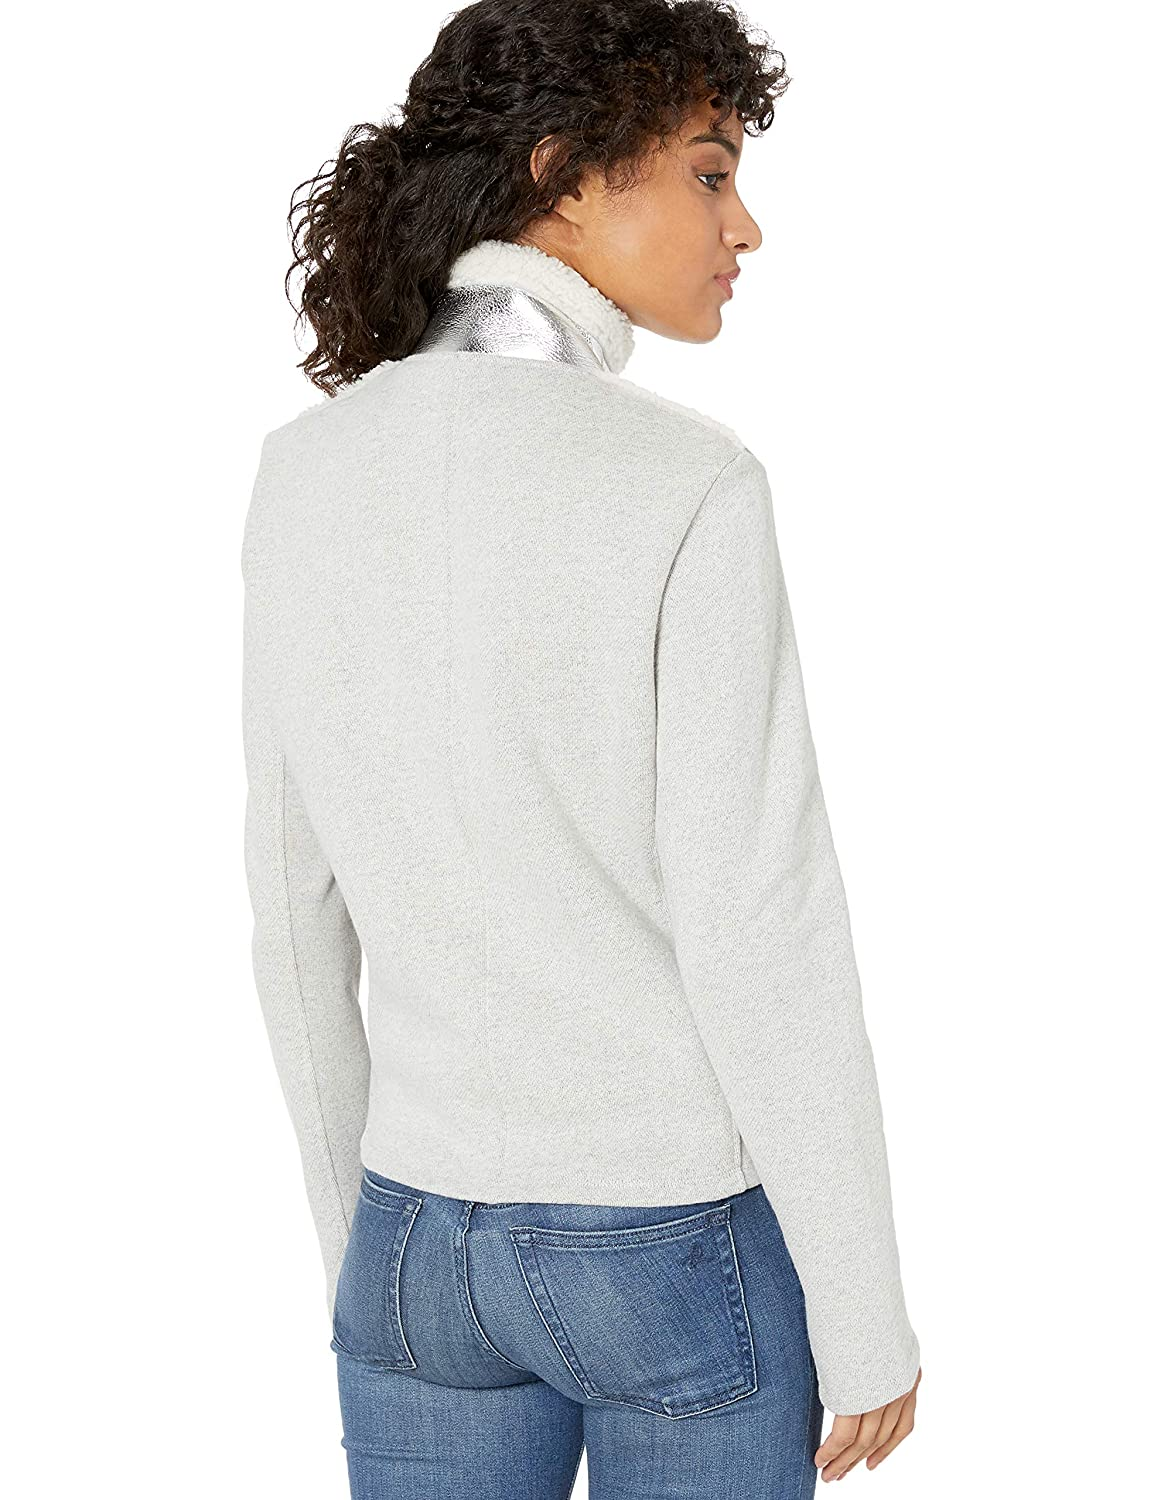 Majestic Filatures Womens Jacket with Metallic Front Pockets